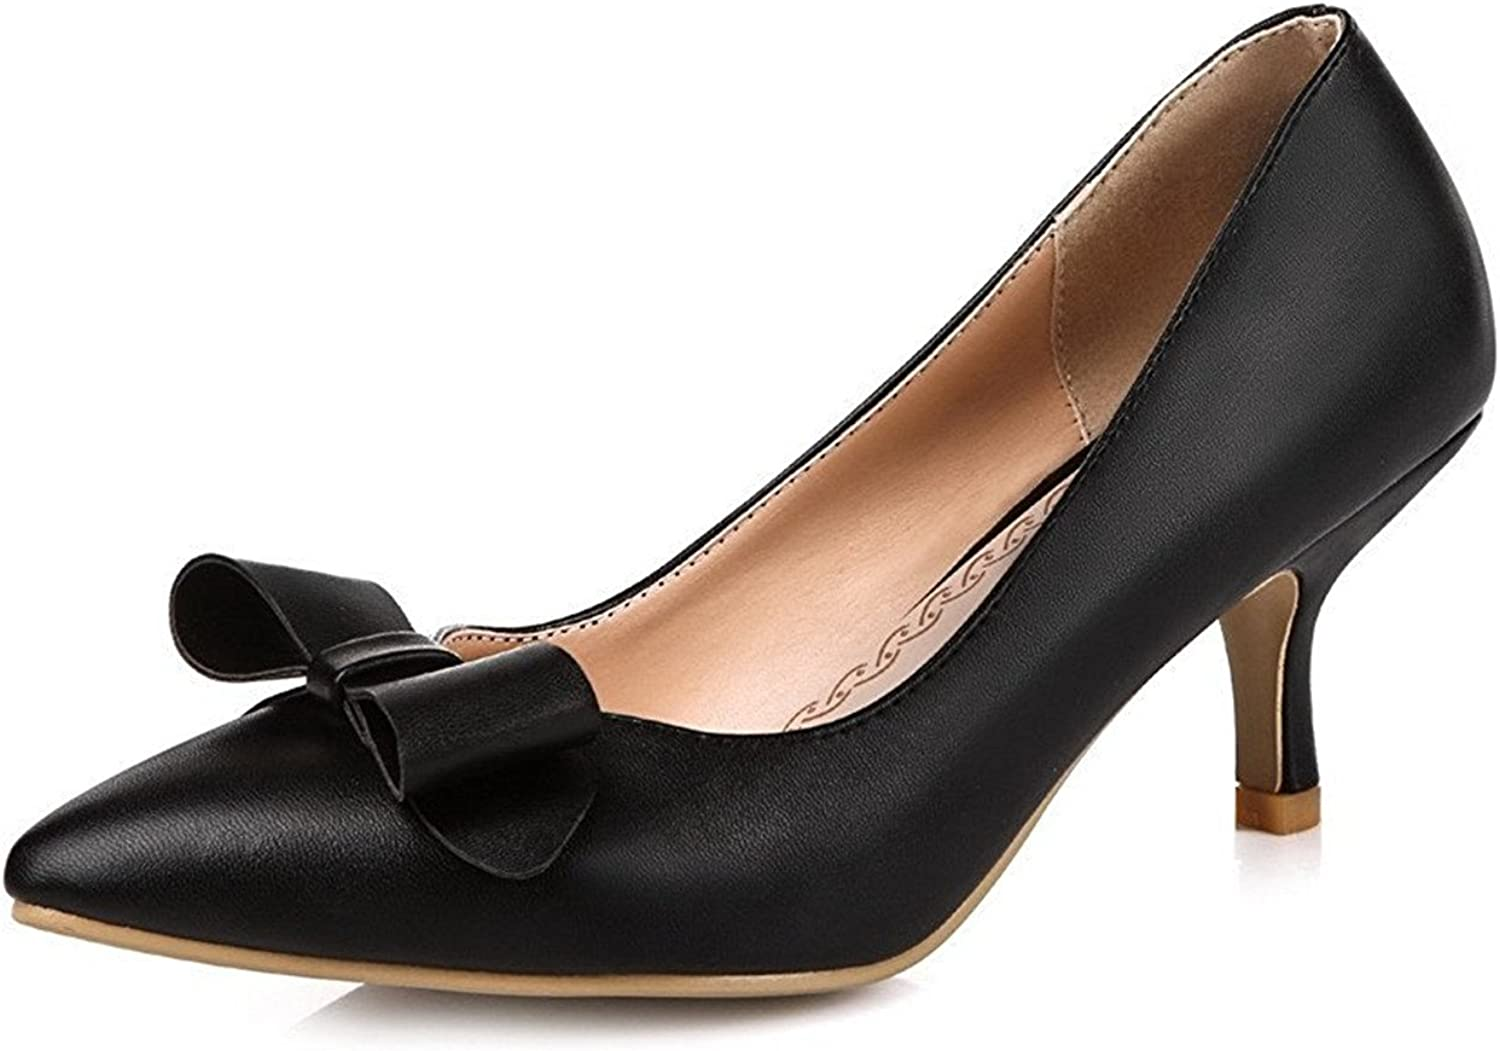 Tirahse Comfortable Women's Pull On Kitten Heels Blend Materials Pointed Closed Toe Pumps-shoes